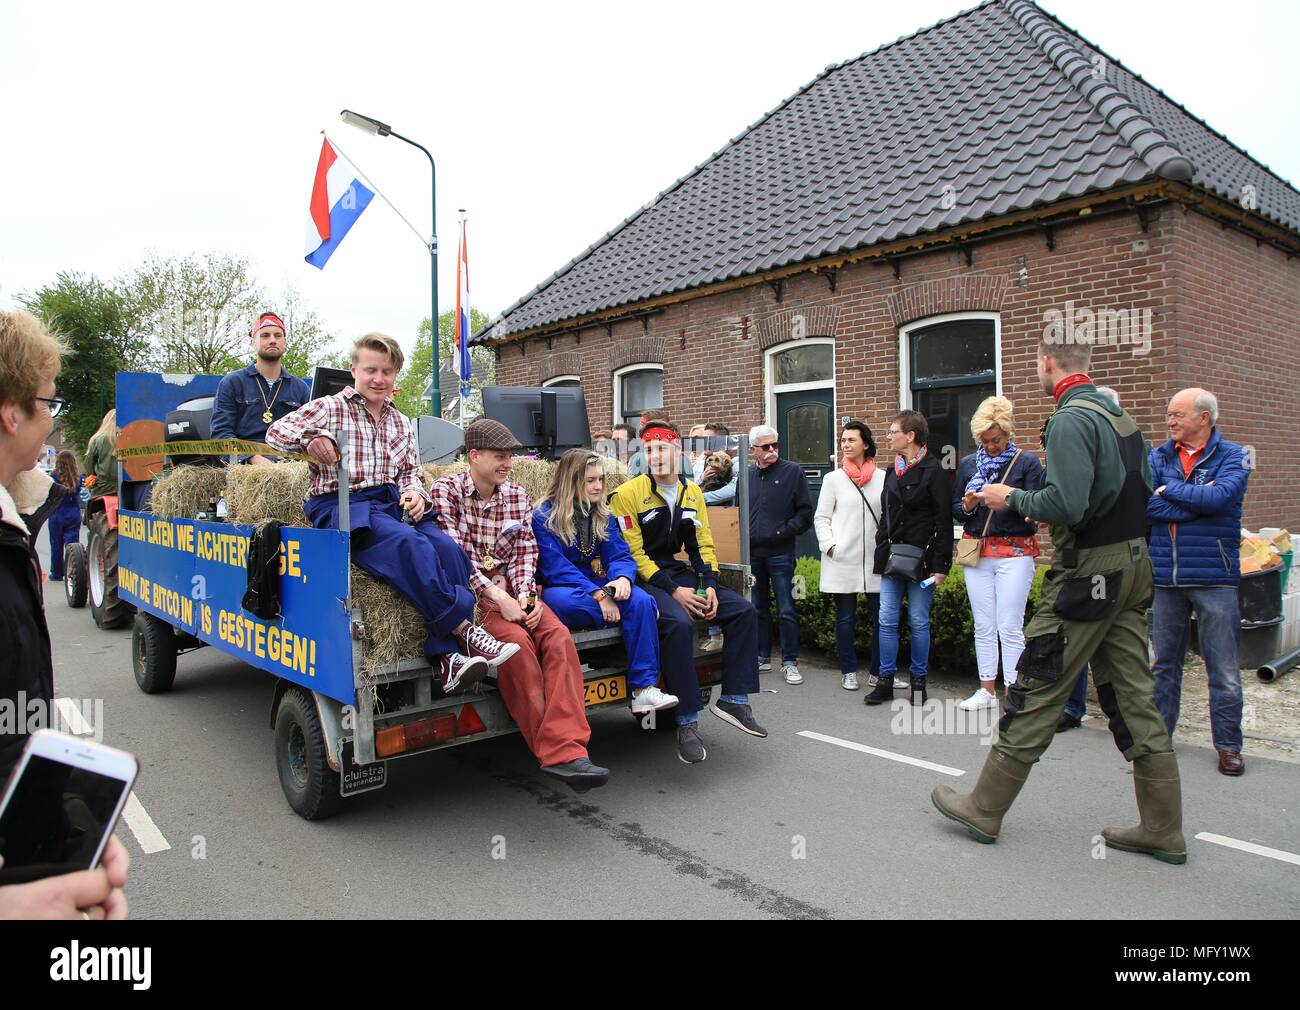 Tienhoven, Netherlands. 27th Apr, 2018. Kingsday Netherlands Tienhoven 27-04-2018 procession bitcoin hype Credit: Catchlight Visual Services/Alamy Live News - Stock Image